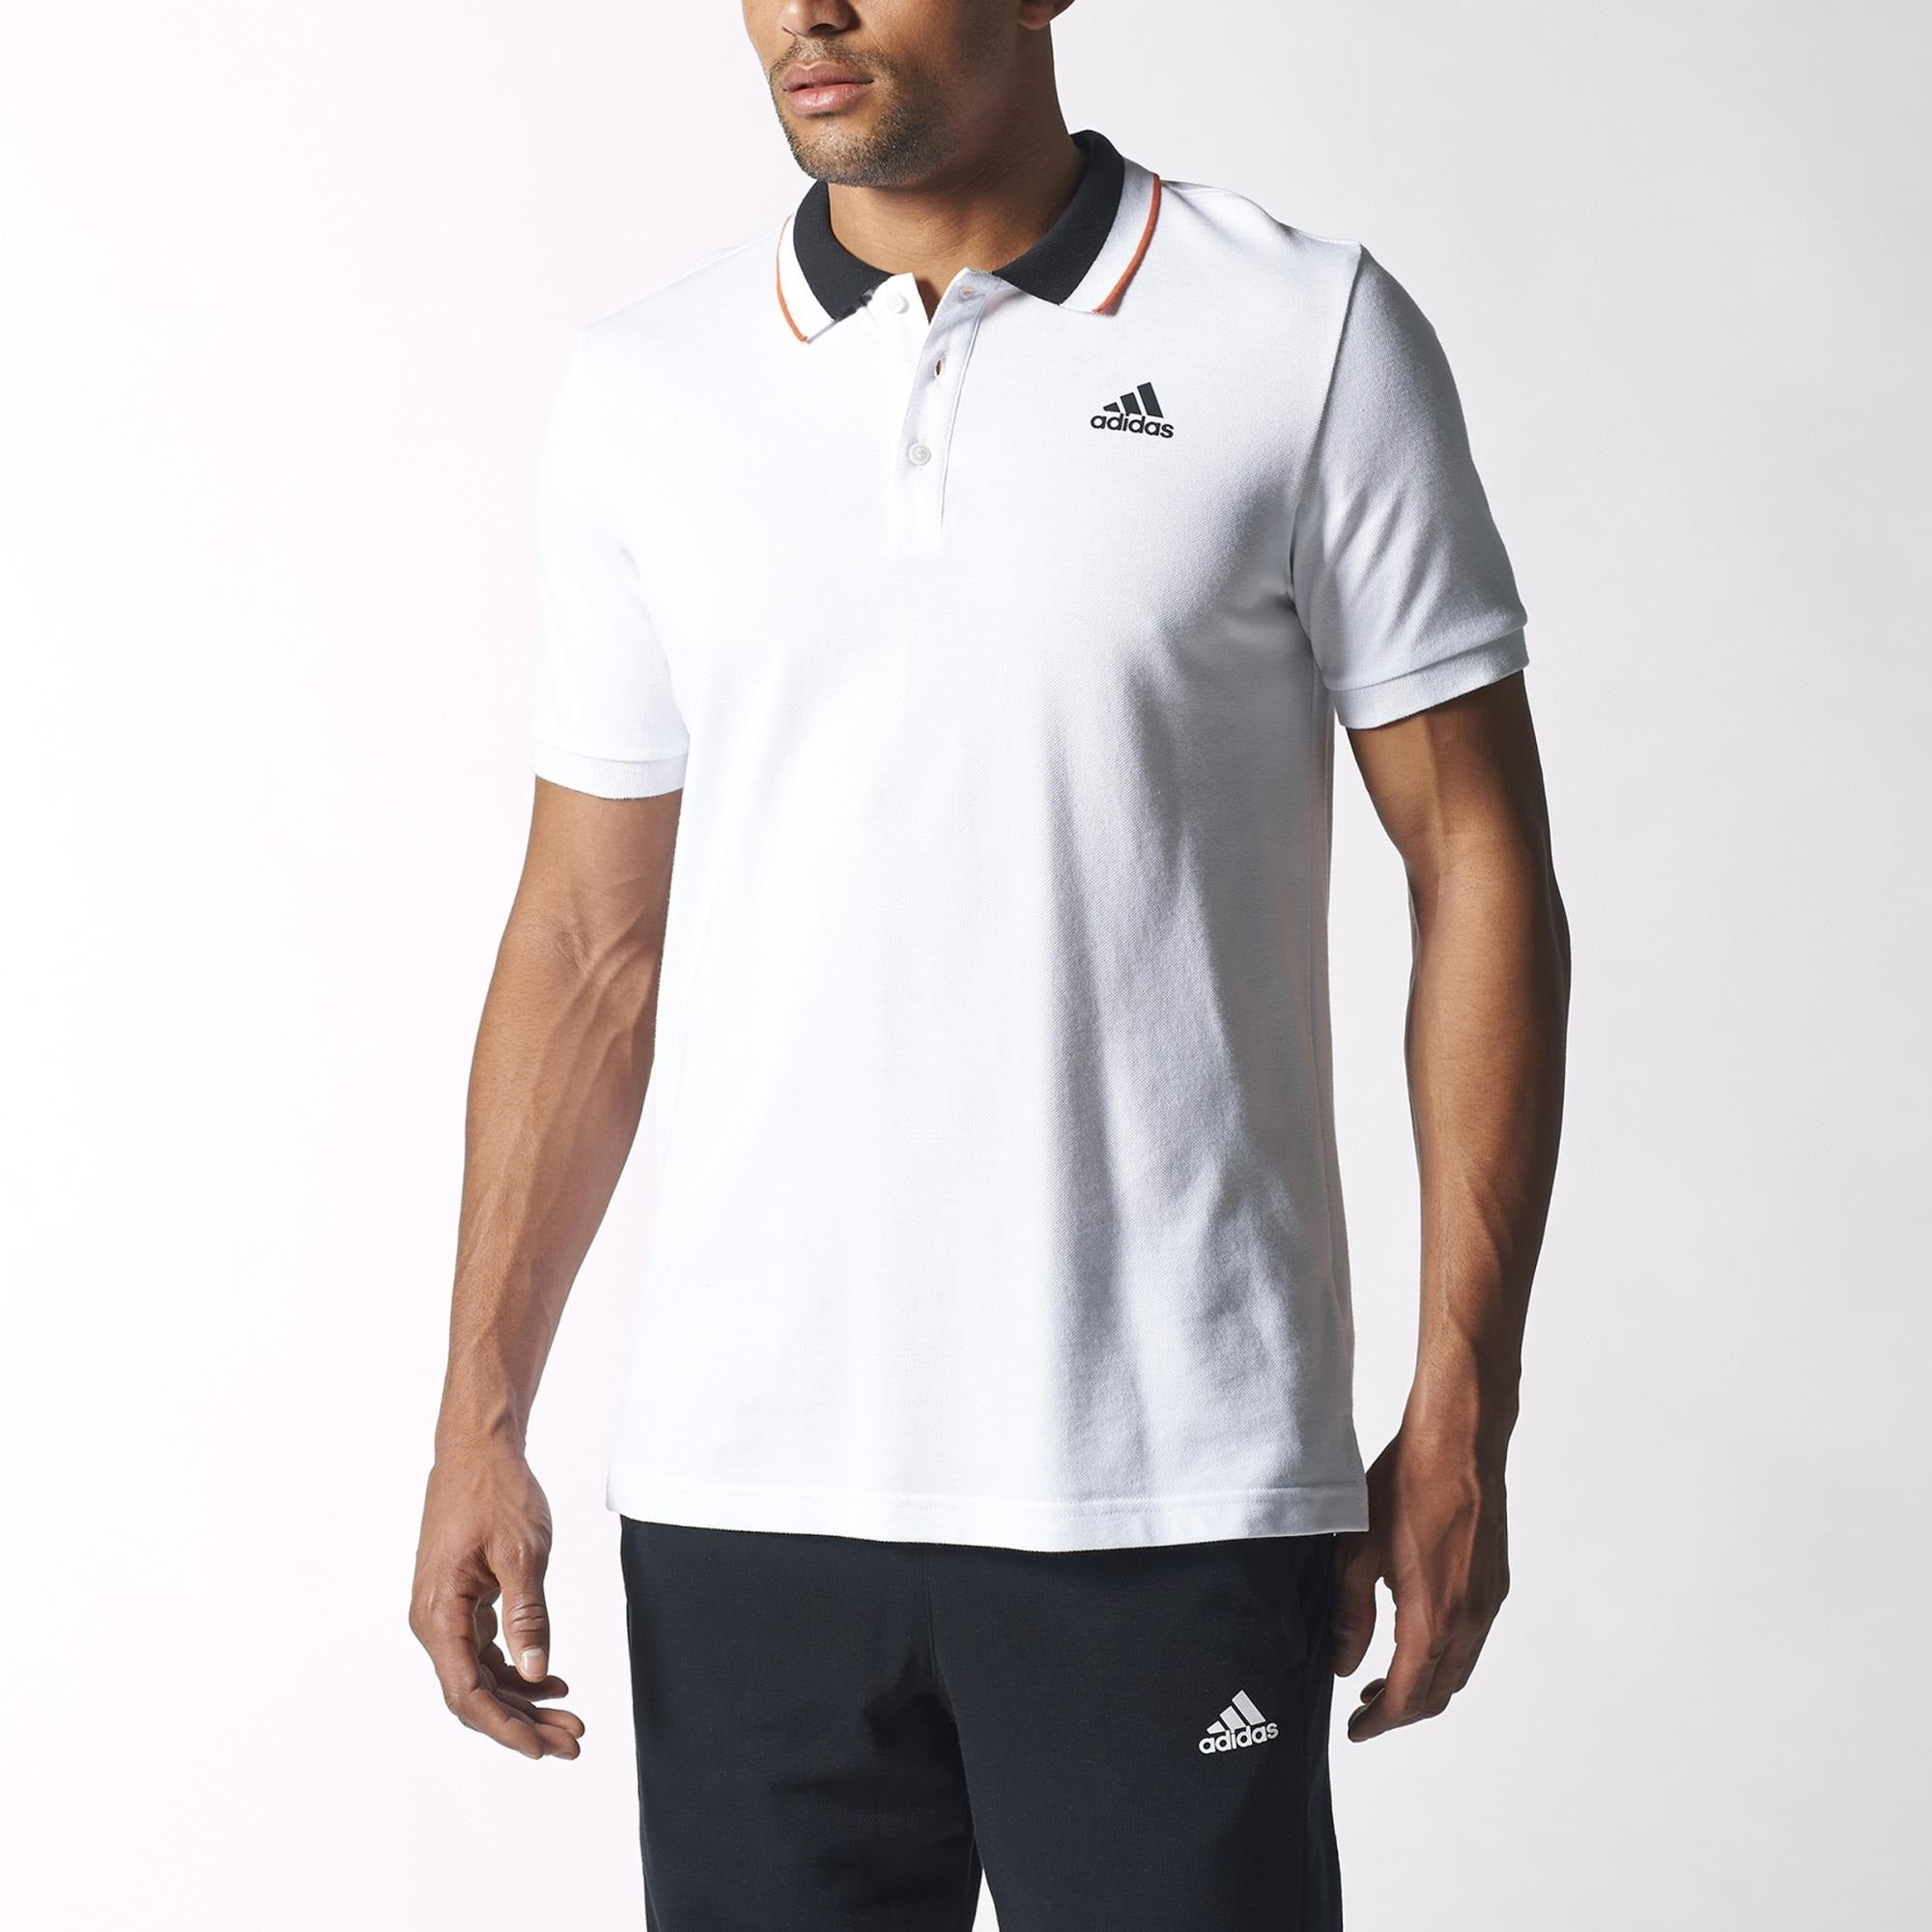 timeless design offer discounts cheapest price Adidas Sport Essentials Polo Shirt - White S12328